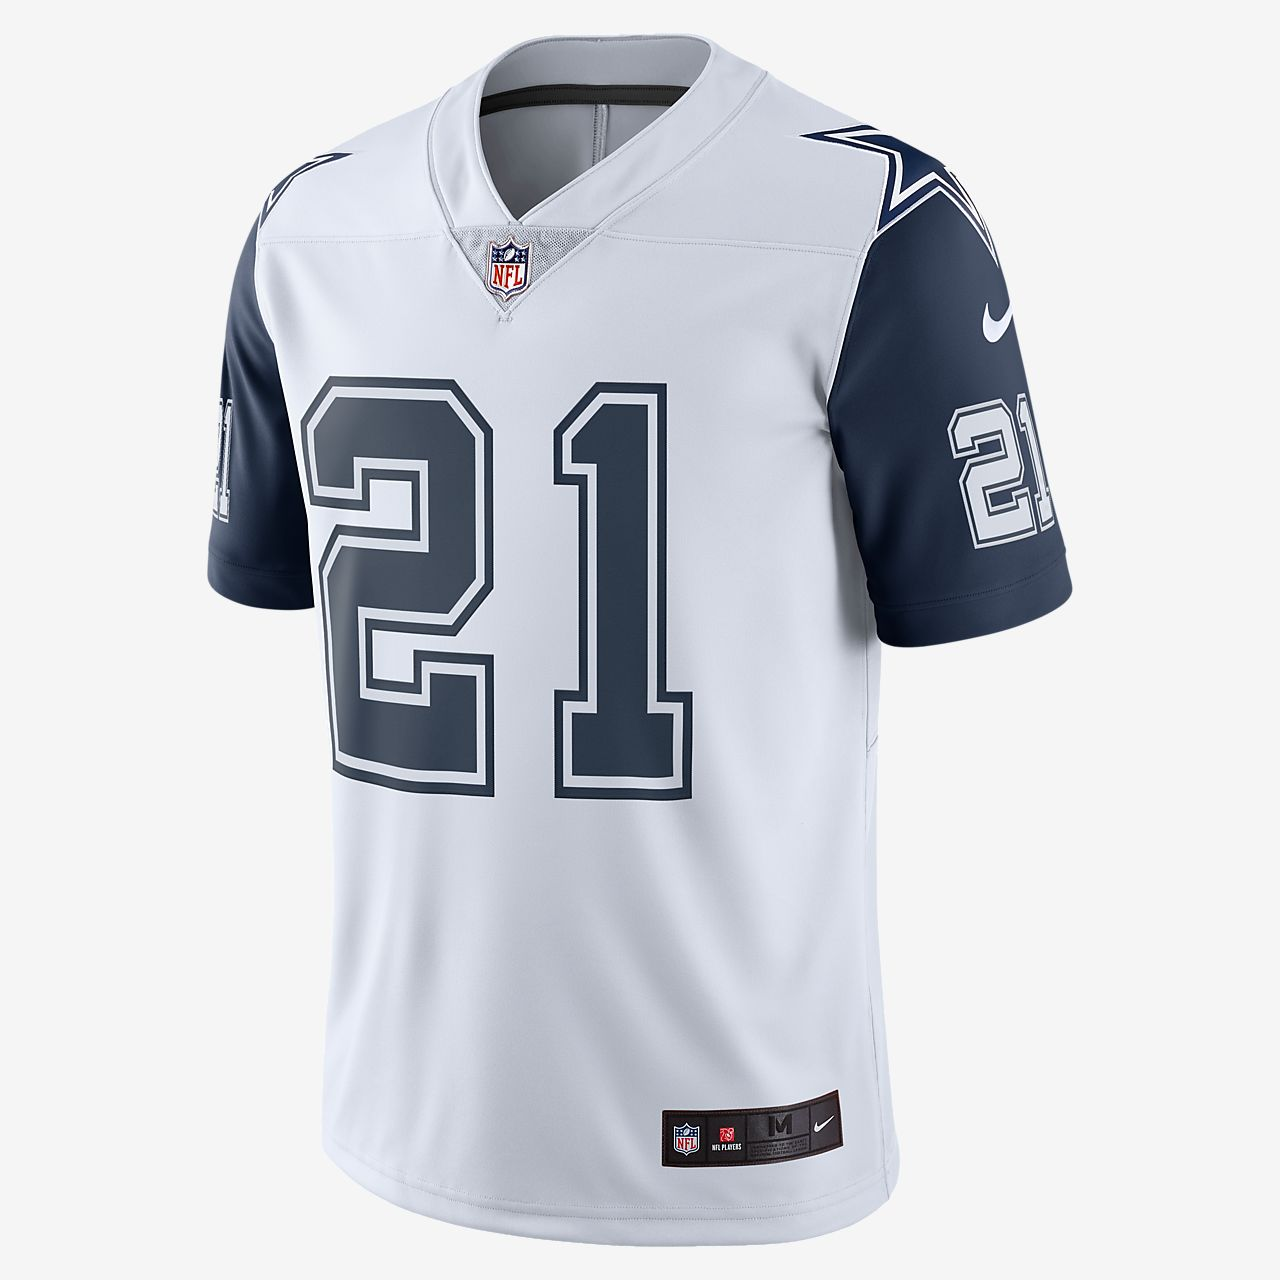 ae6c9d661ca NFL Dallas Cowboys Color Rush Limited (Ezekiel Elliott) Men's ...